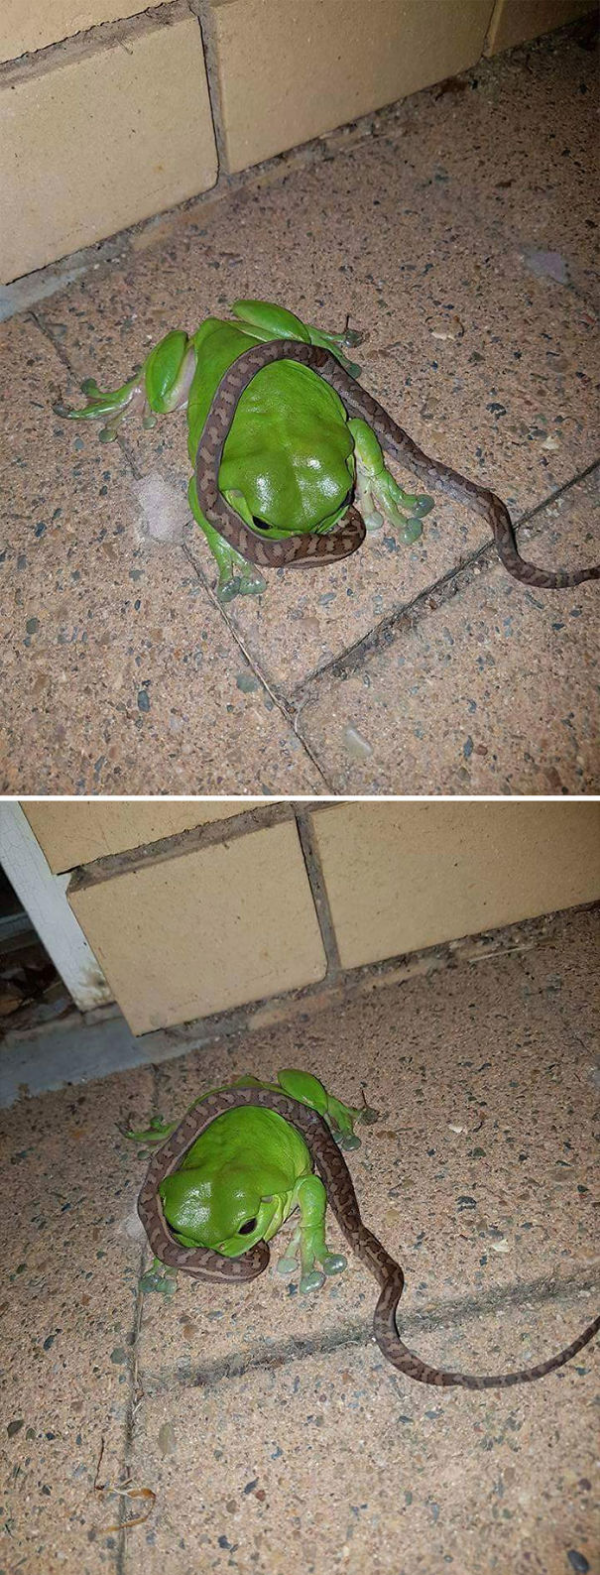 frog eating a snake scary animals in Australia